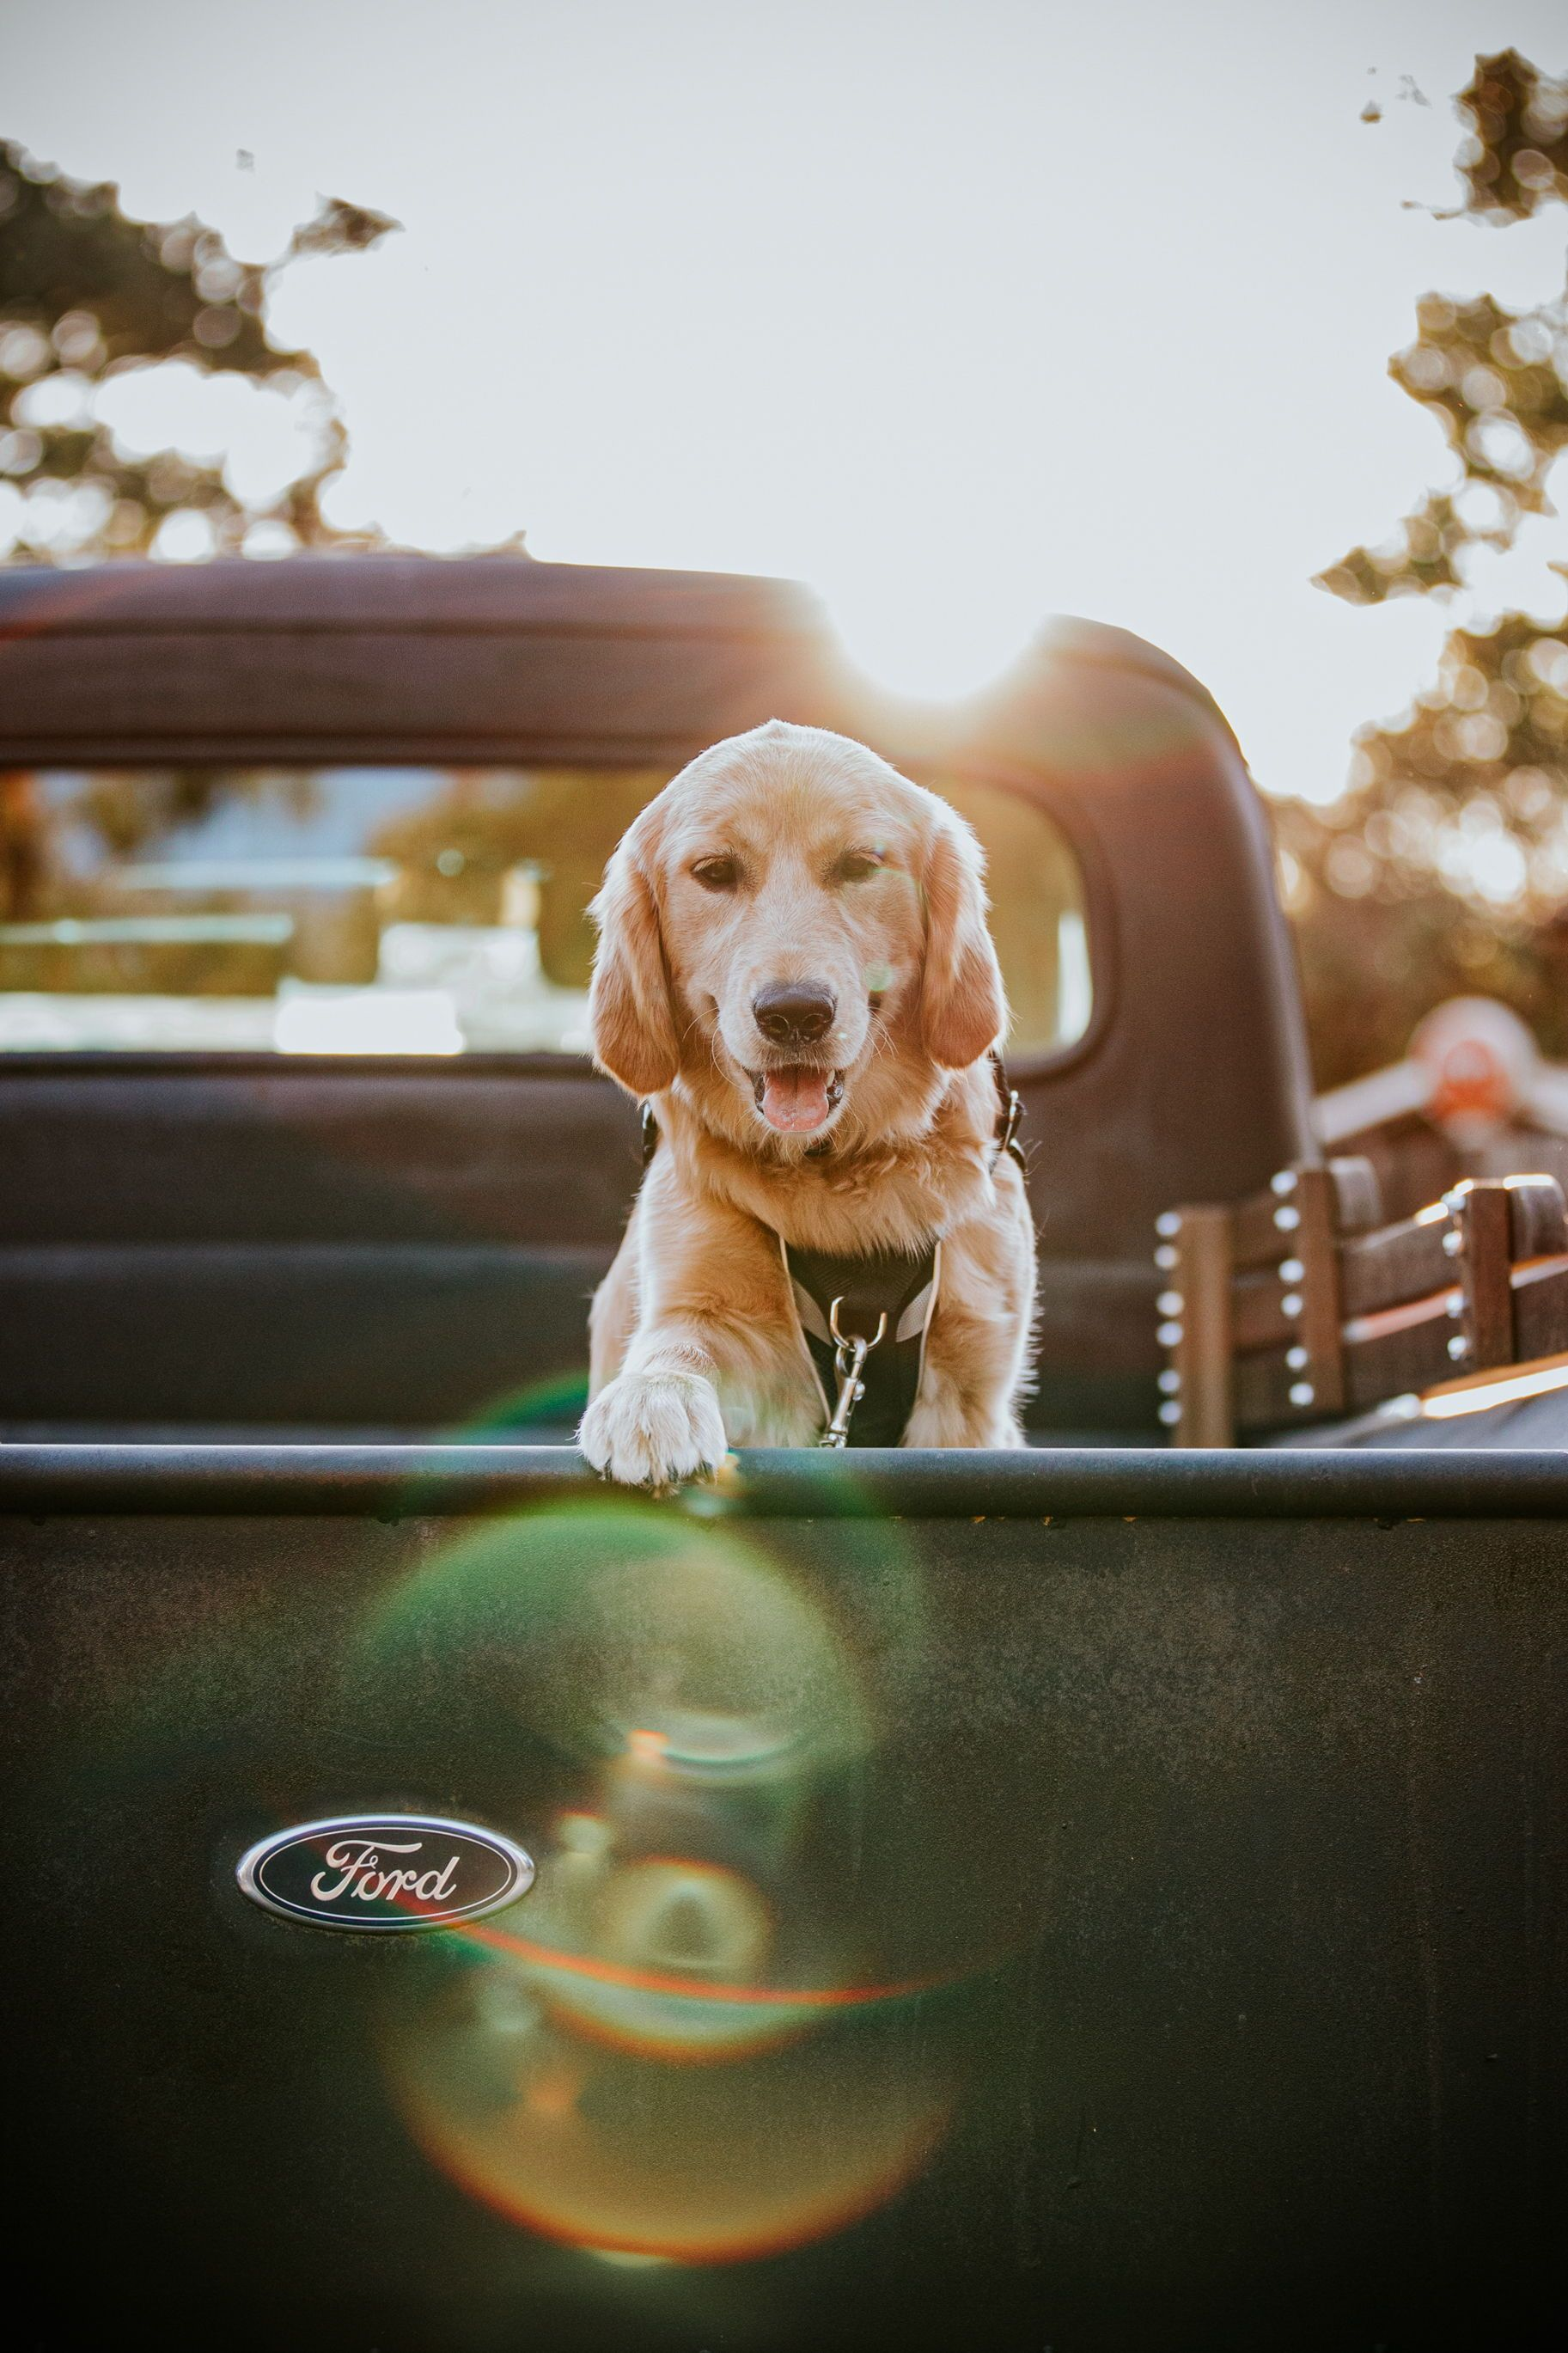 Cute Dog Of Honor Wedding Photo In A Vintage Truck At Golden Hour Sunset In 2020 Wedding Photos Poses Puppy Pose Romantic Photos